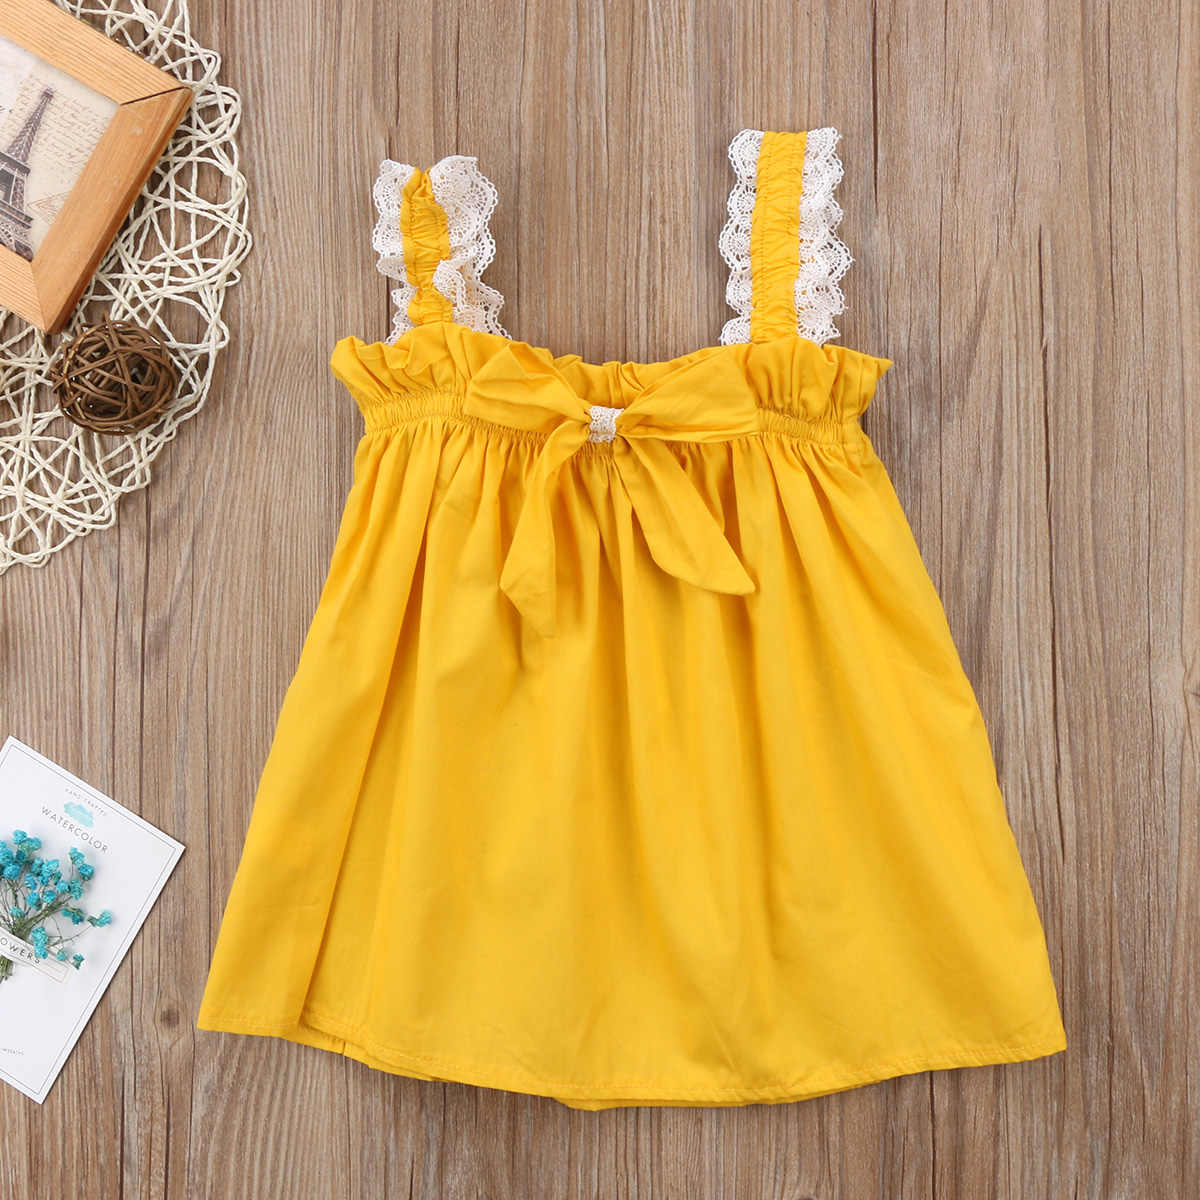 ... Newborn Kid Infant Baby Girls Yellow Lace Sleeveless Dress Ruffles Bow  Party Dresses Casual Sundress Clothes da3e3589738f